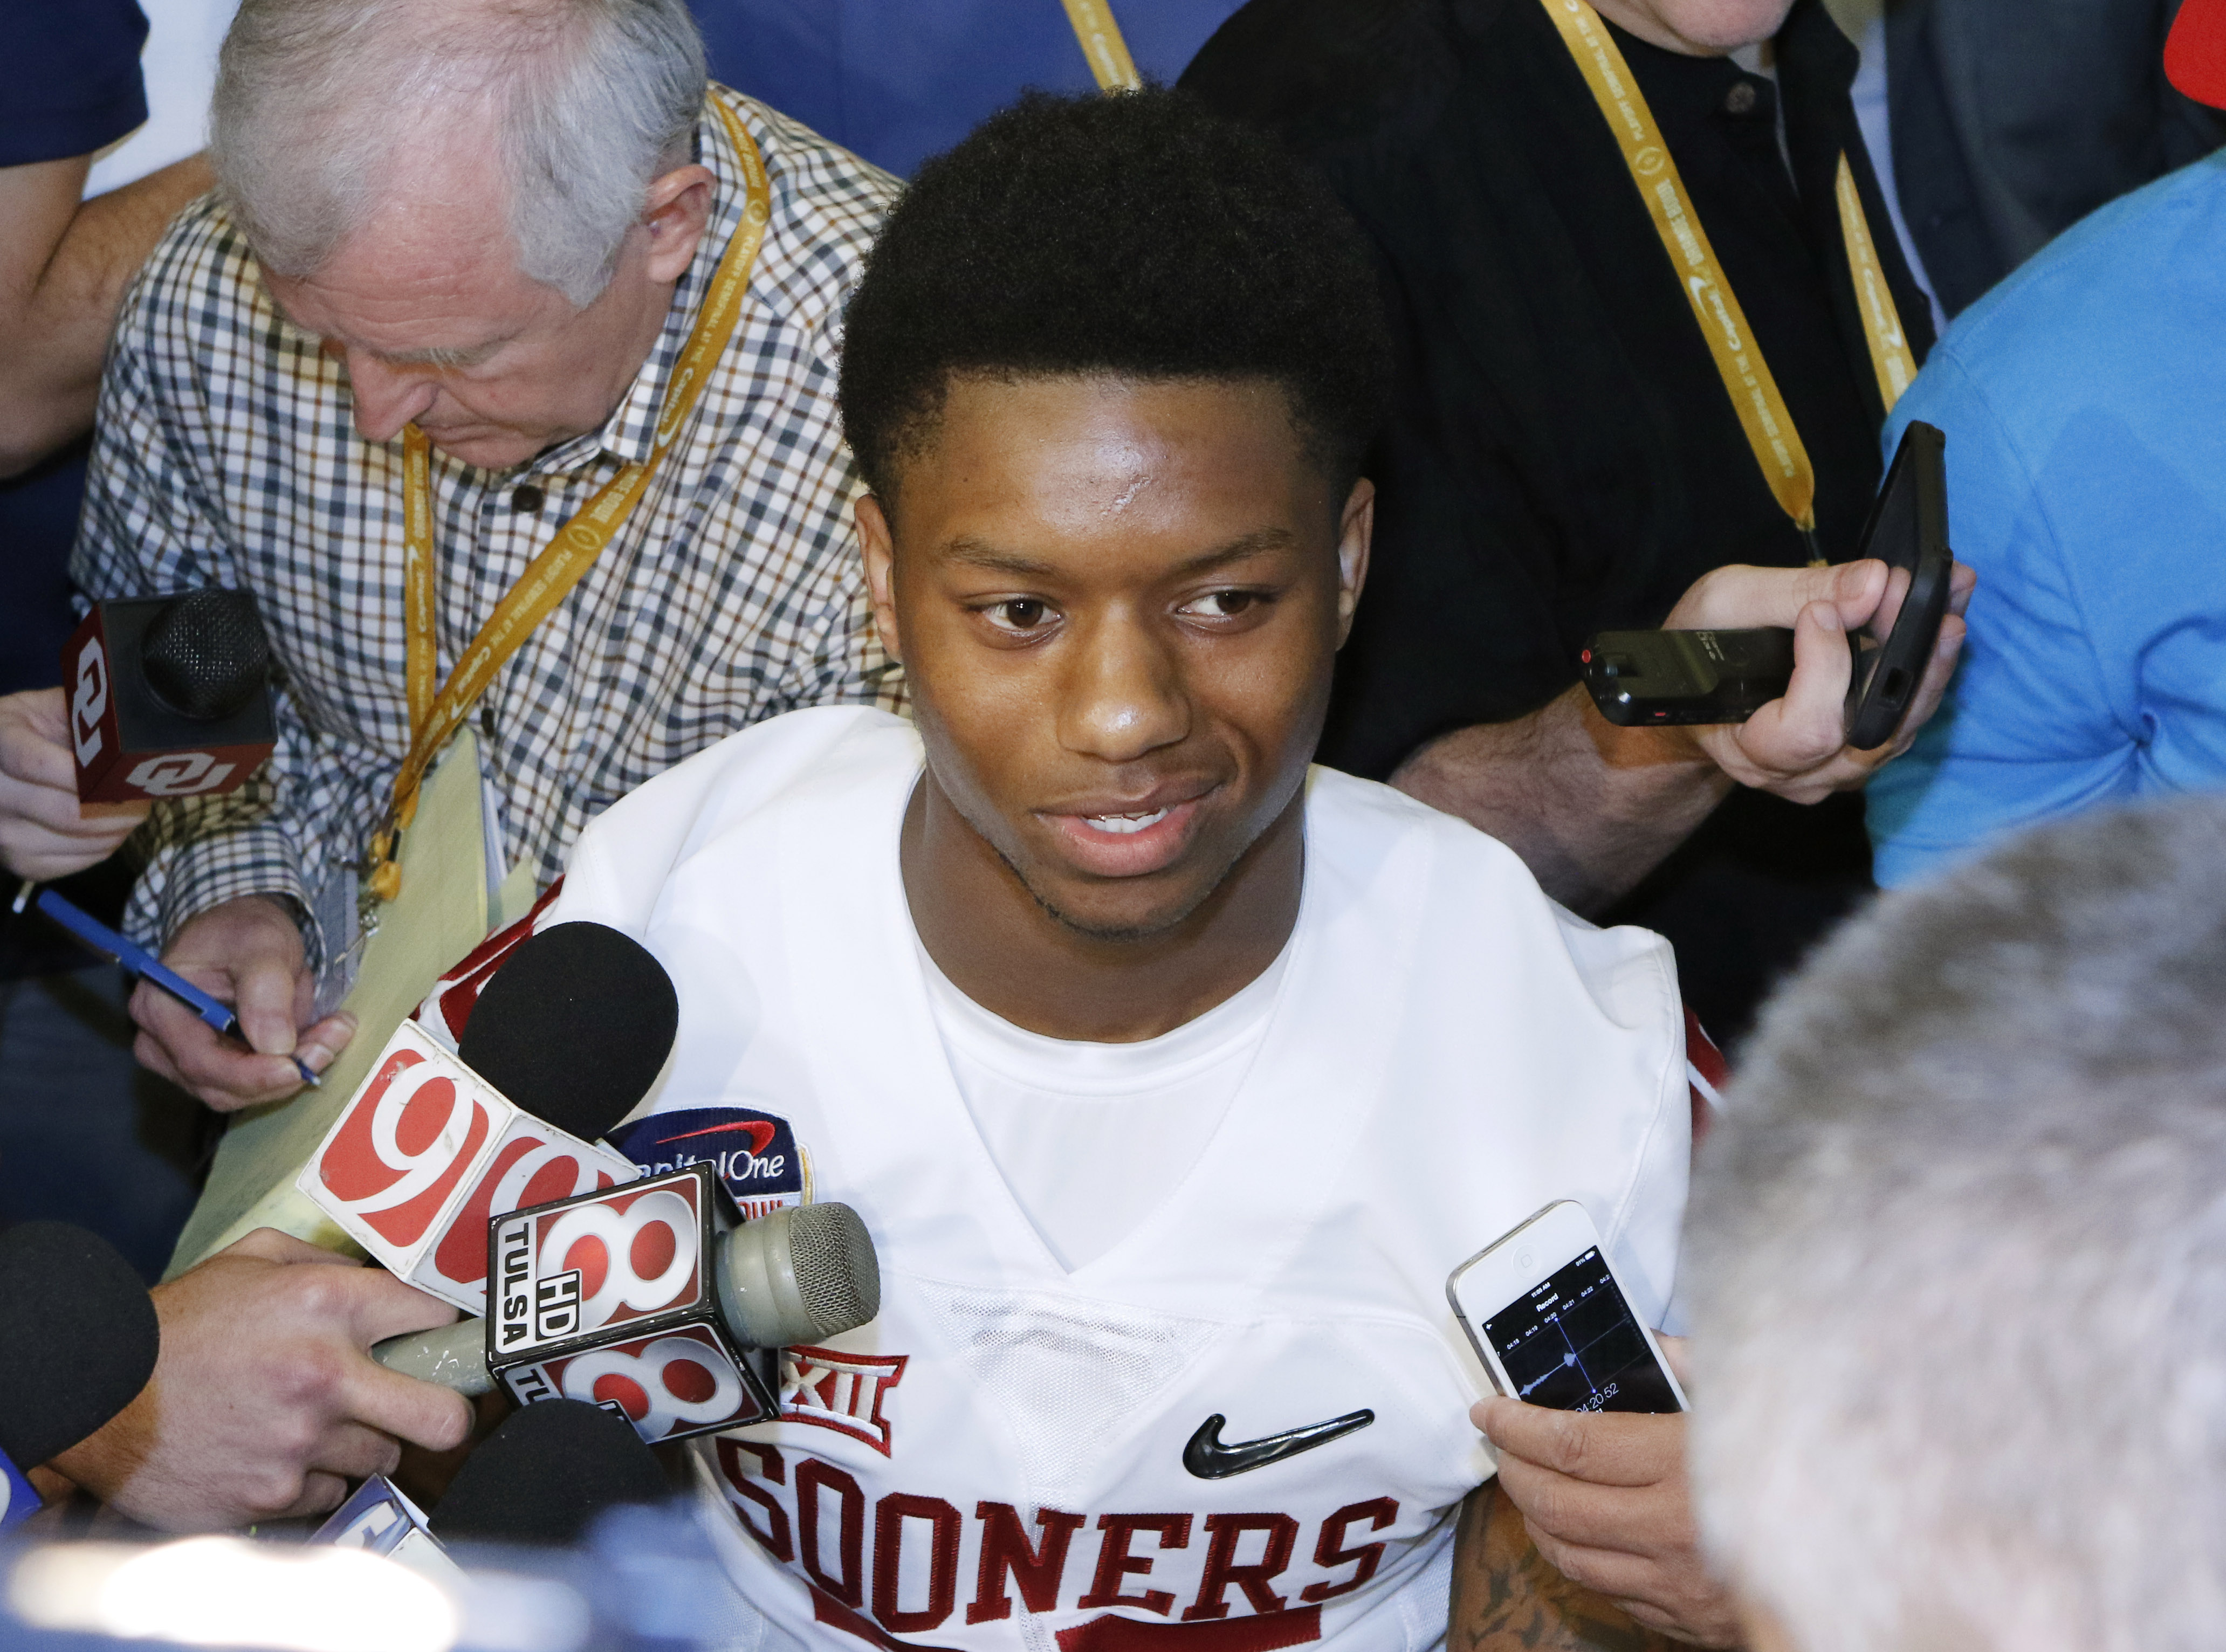 Oklahoma running back Joe Mixon speaks with reporters during the media day for the Orange Bowl at Sun Life Stadium Tuesday, Dec. 29, 2015, in Miami Gardens Fla. Oklahoma is scheduled to play Clemson in the Orange Bowl NCAA college football game on New Yea